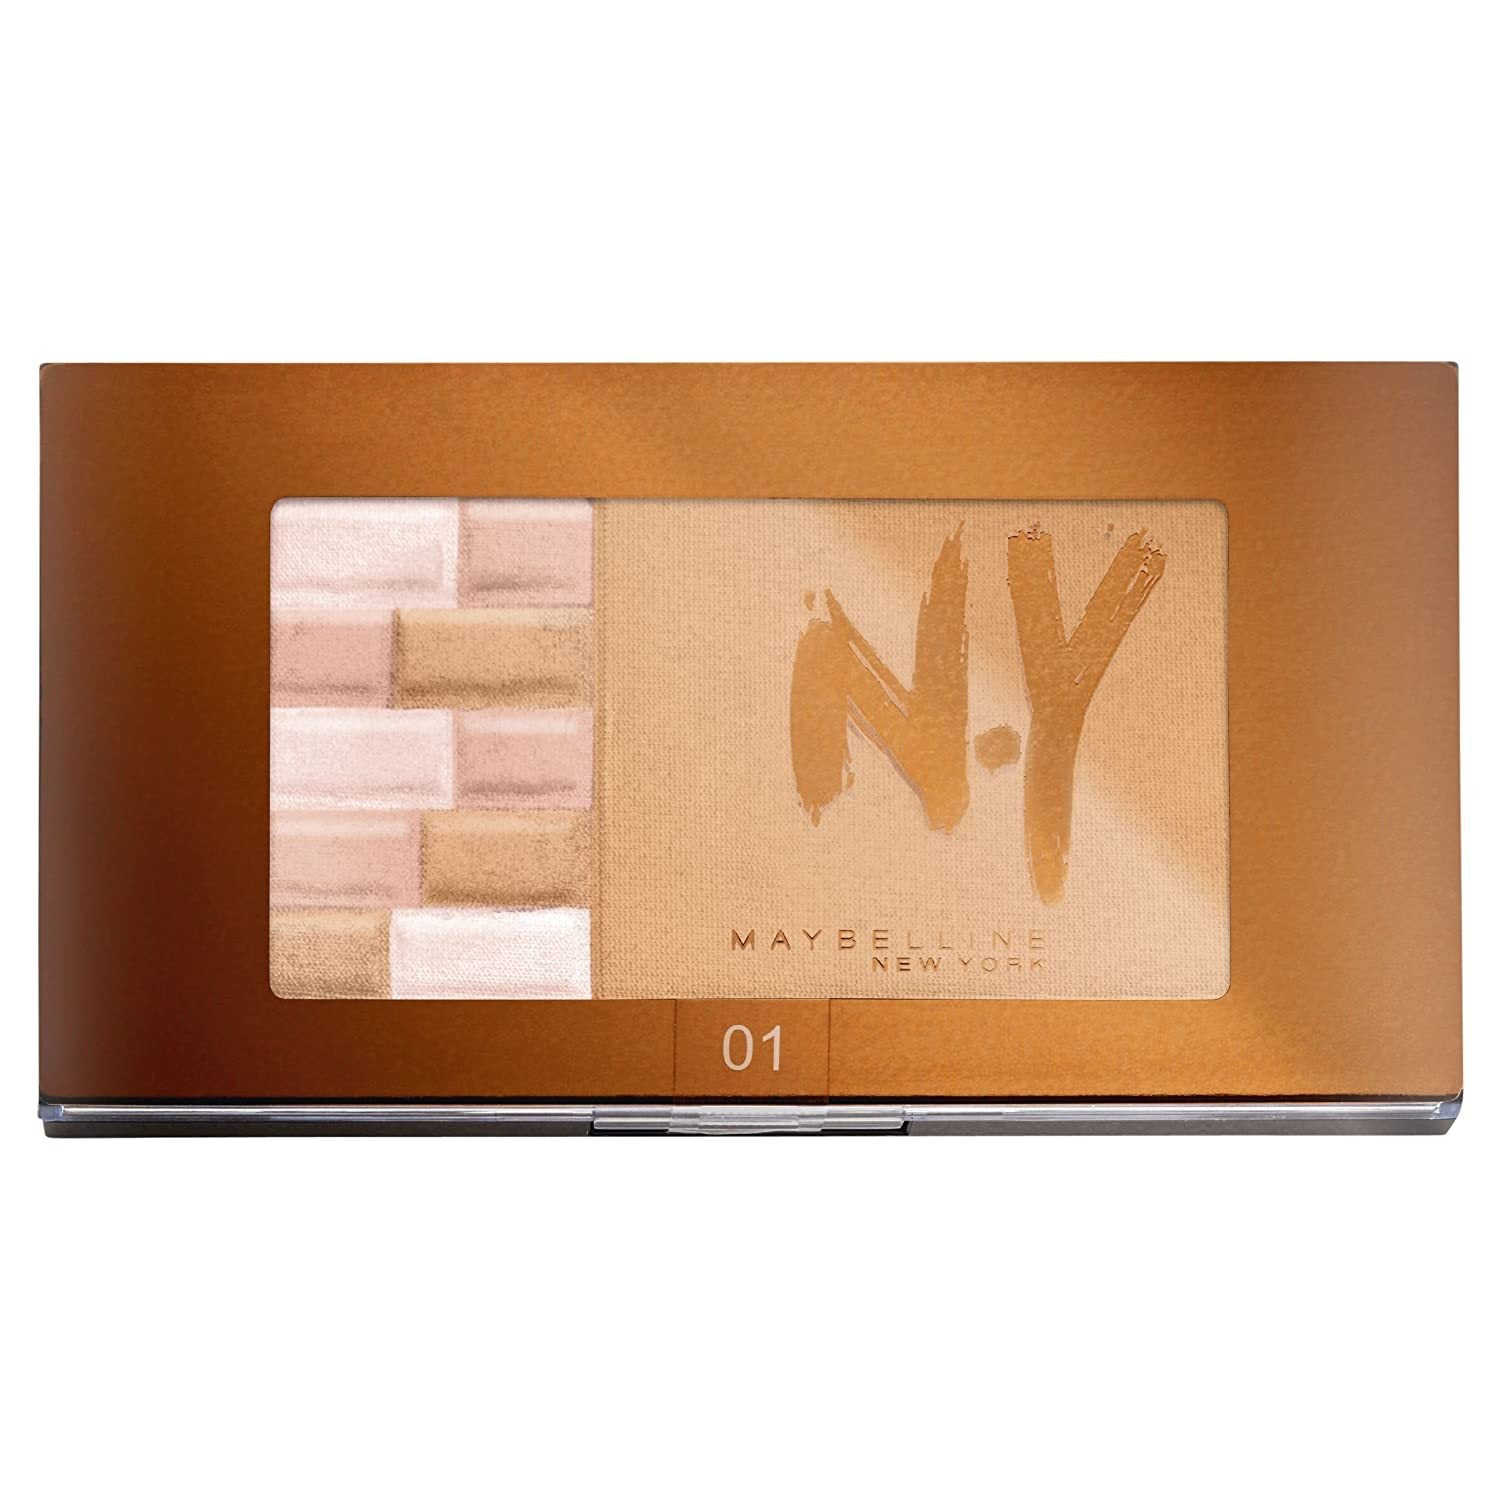 Maybelline NY Face Studio Bricks Bronzer Palette - 01 BLONDES